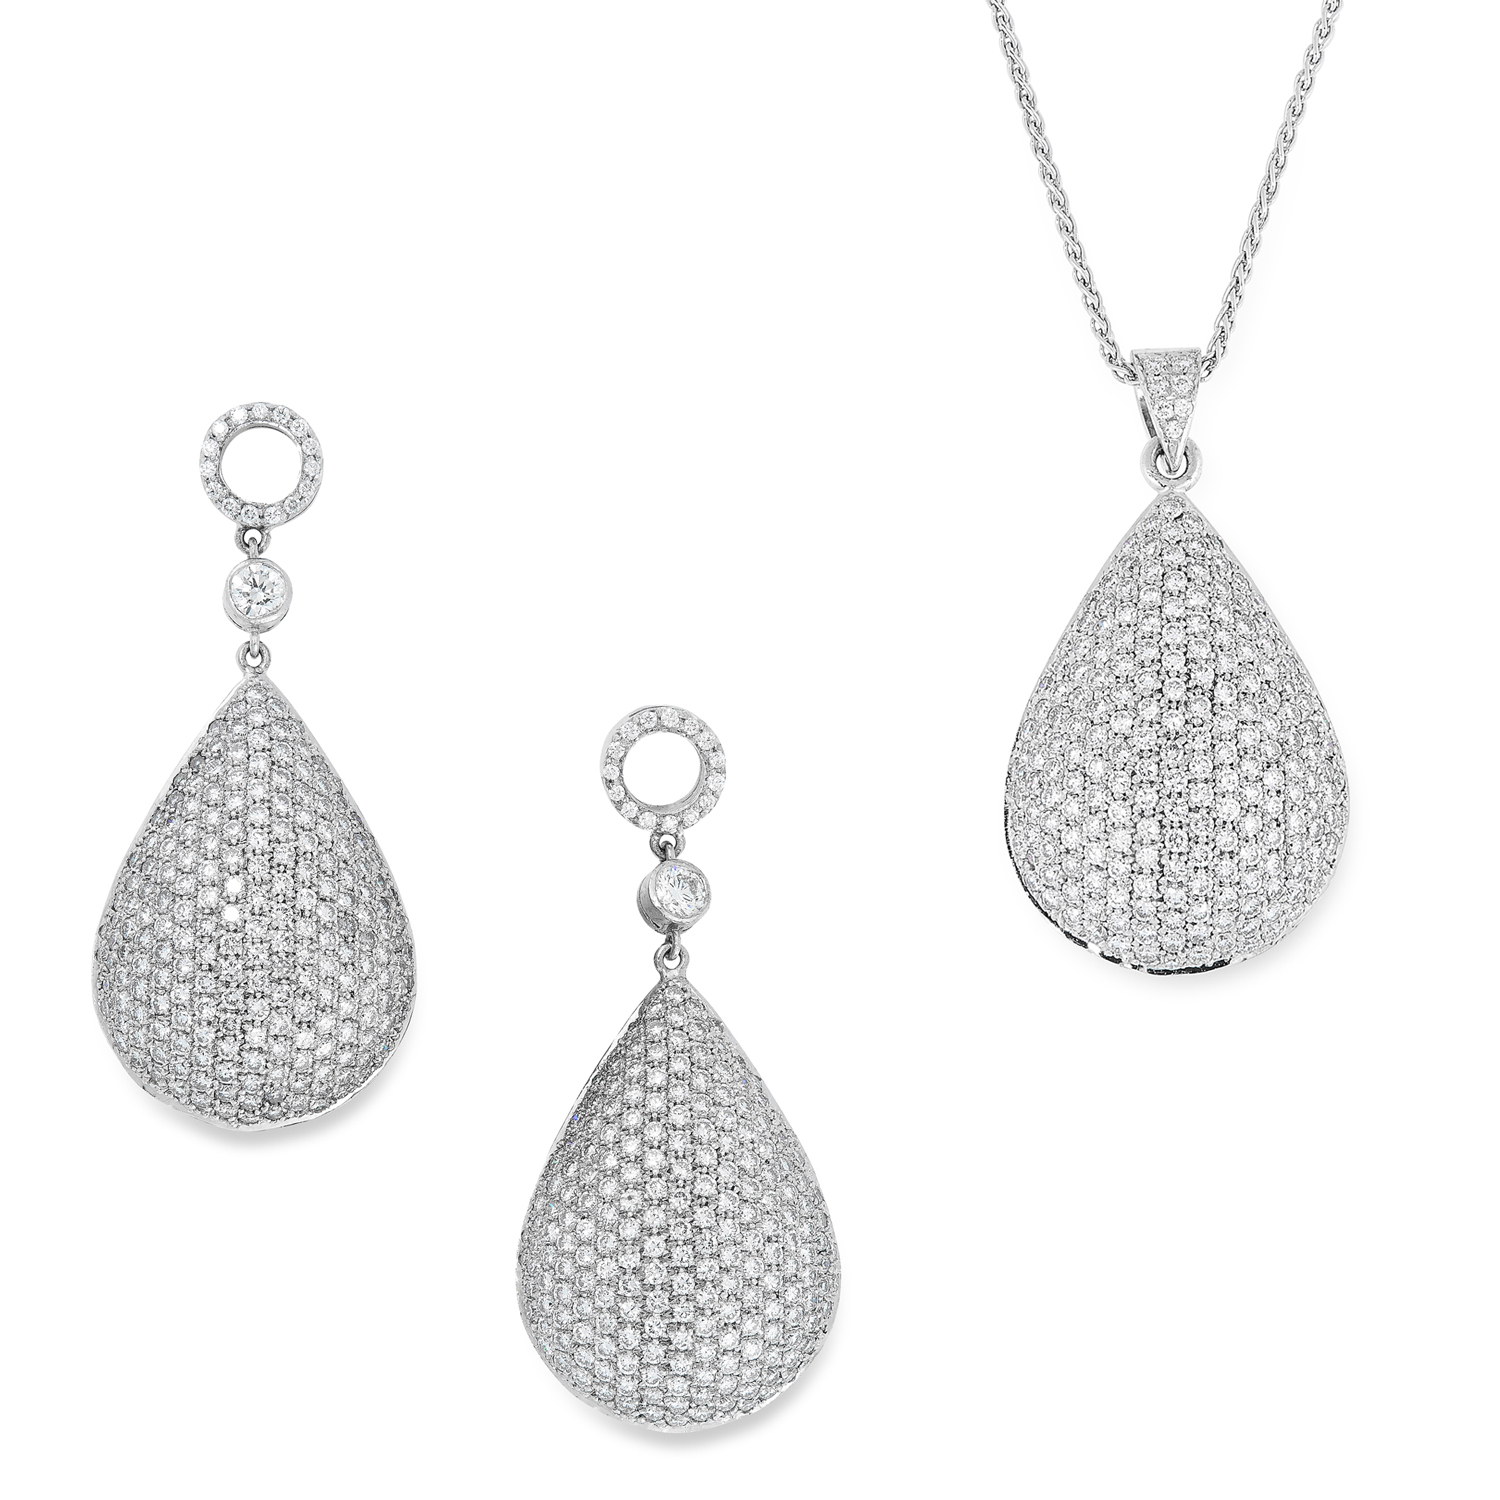 A DIAMOND PENDANT AND EARRINGS SUITE comprising a pair of earrings, pendant and chain, in teardrop